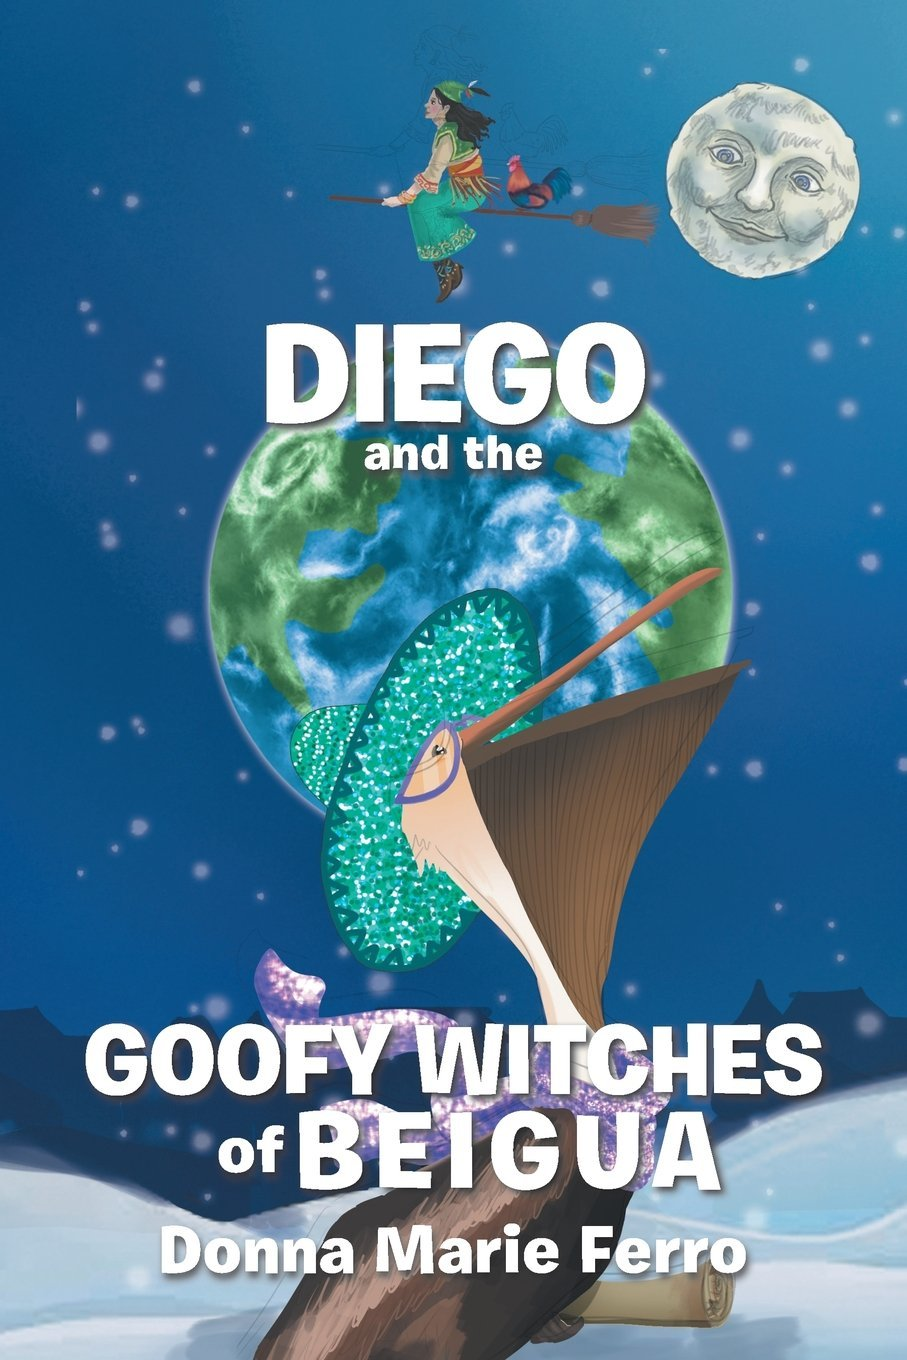 Download Diego and the Goofy Witches of Beigua PDF